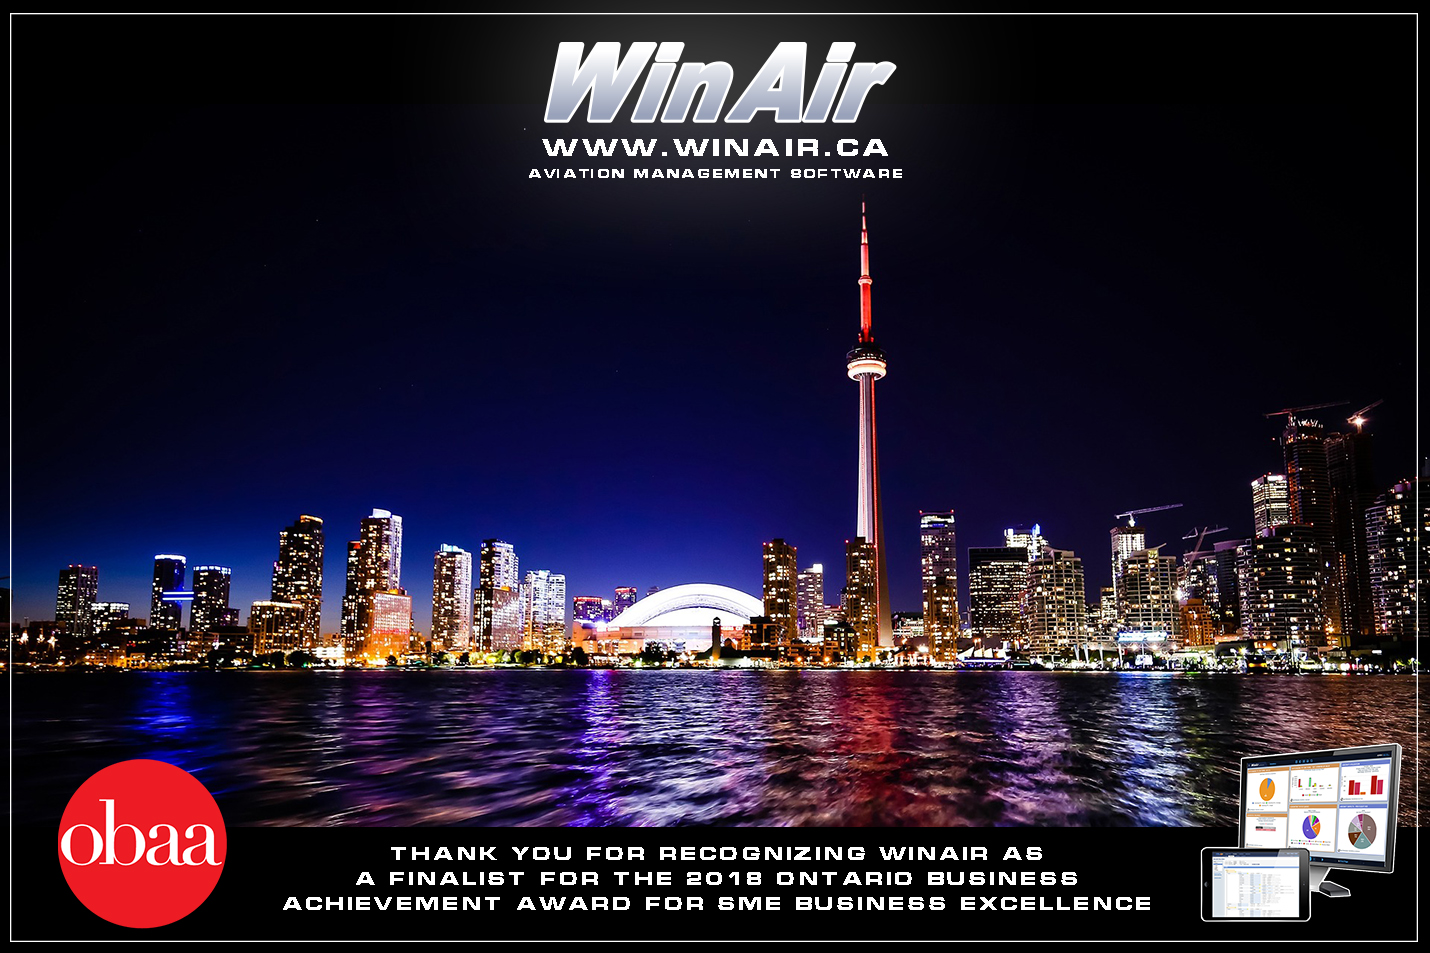 WinAir - Ontario Business Achievement Awards - Thank You Message with image of Toronto skyline